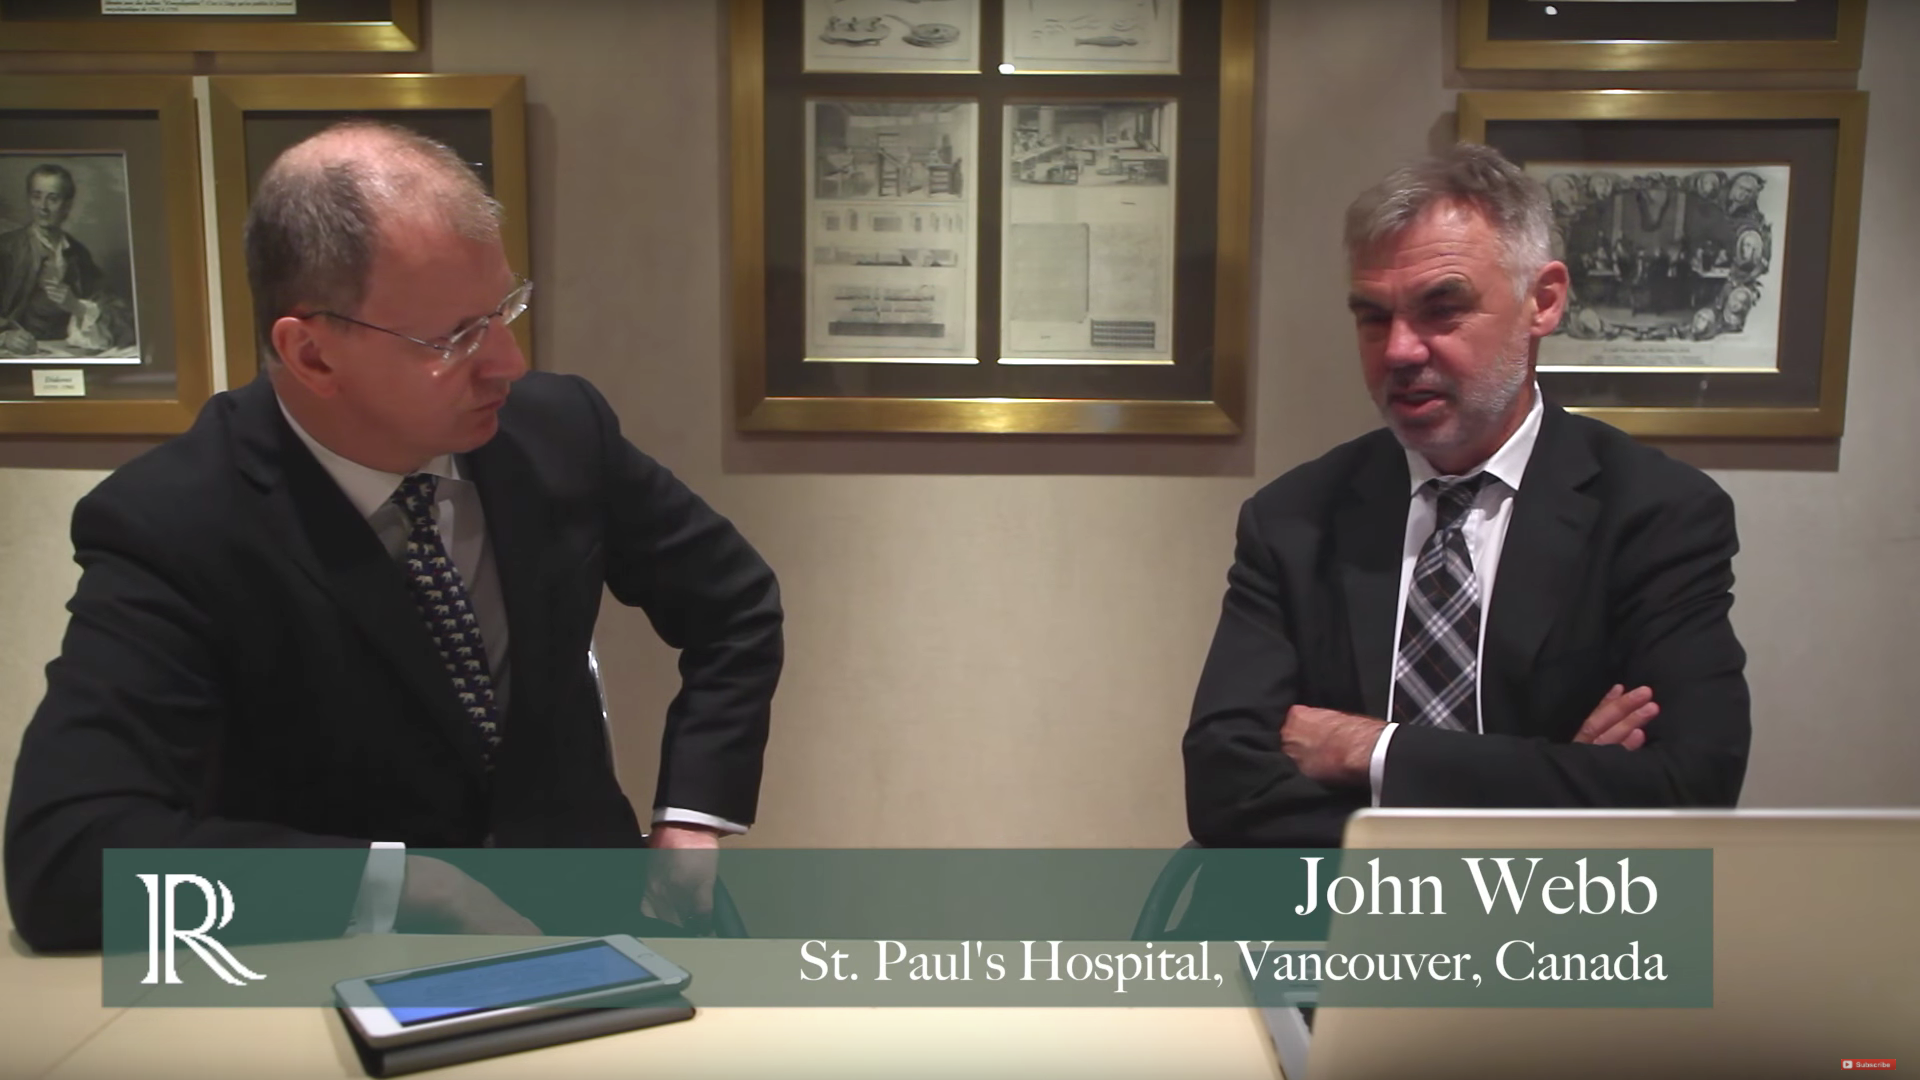 EuroPCR 2015: The SAPIEN 3 Trials - One Year Outcomes, With John Webb And Simon Kennon